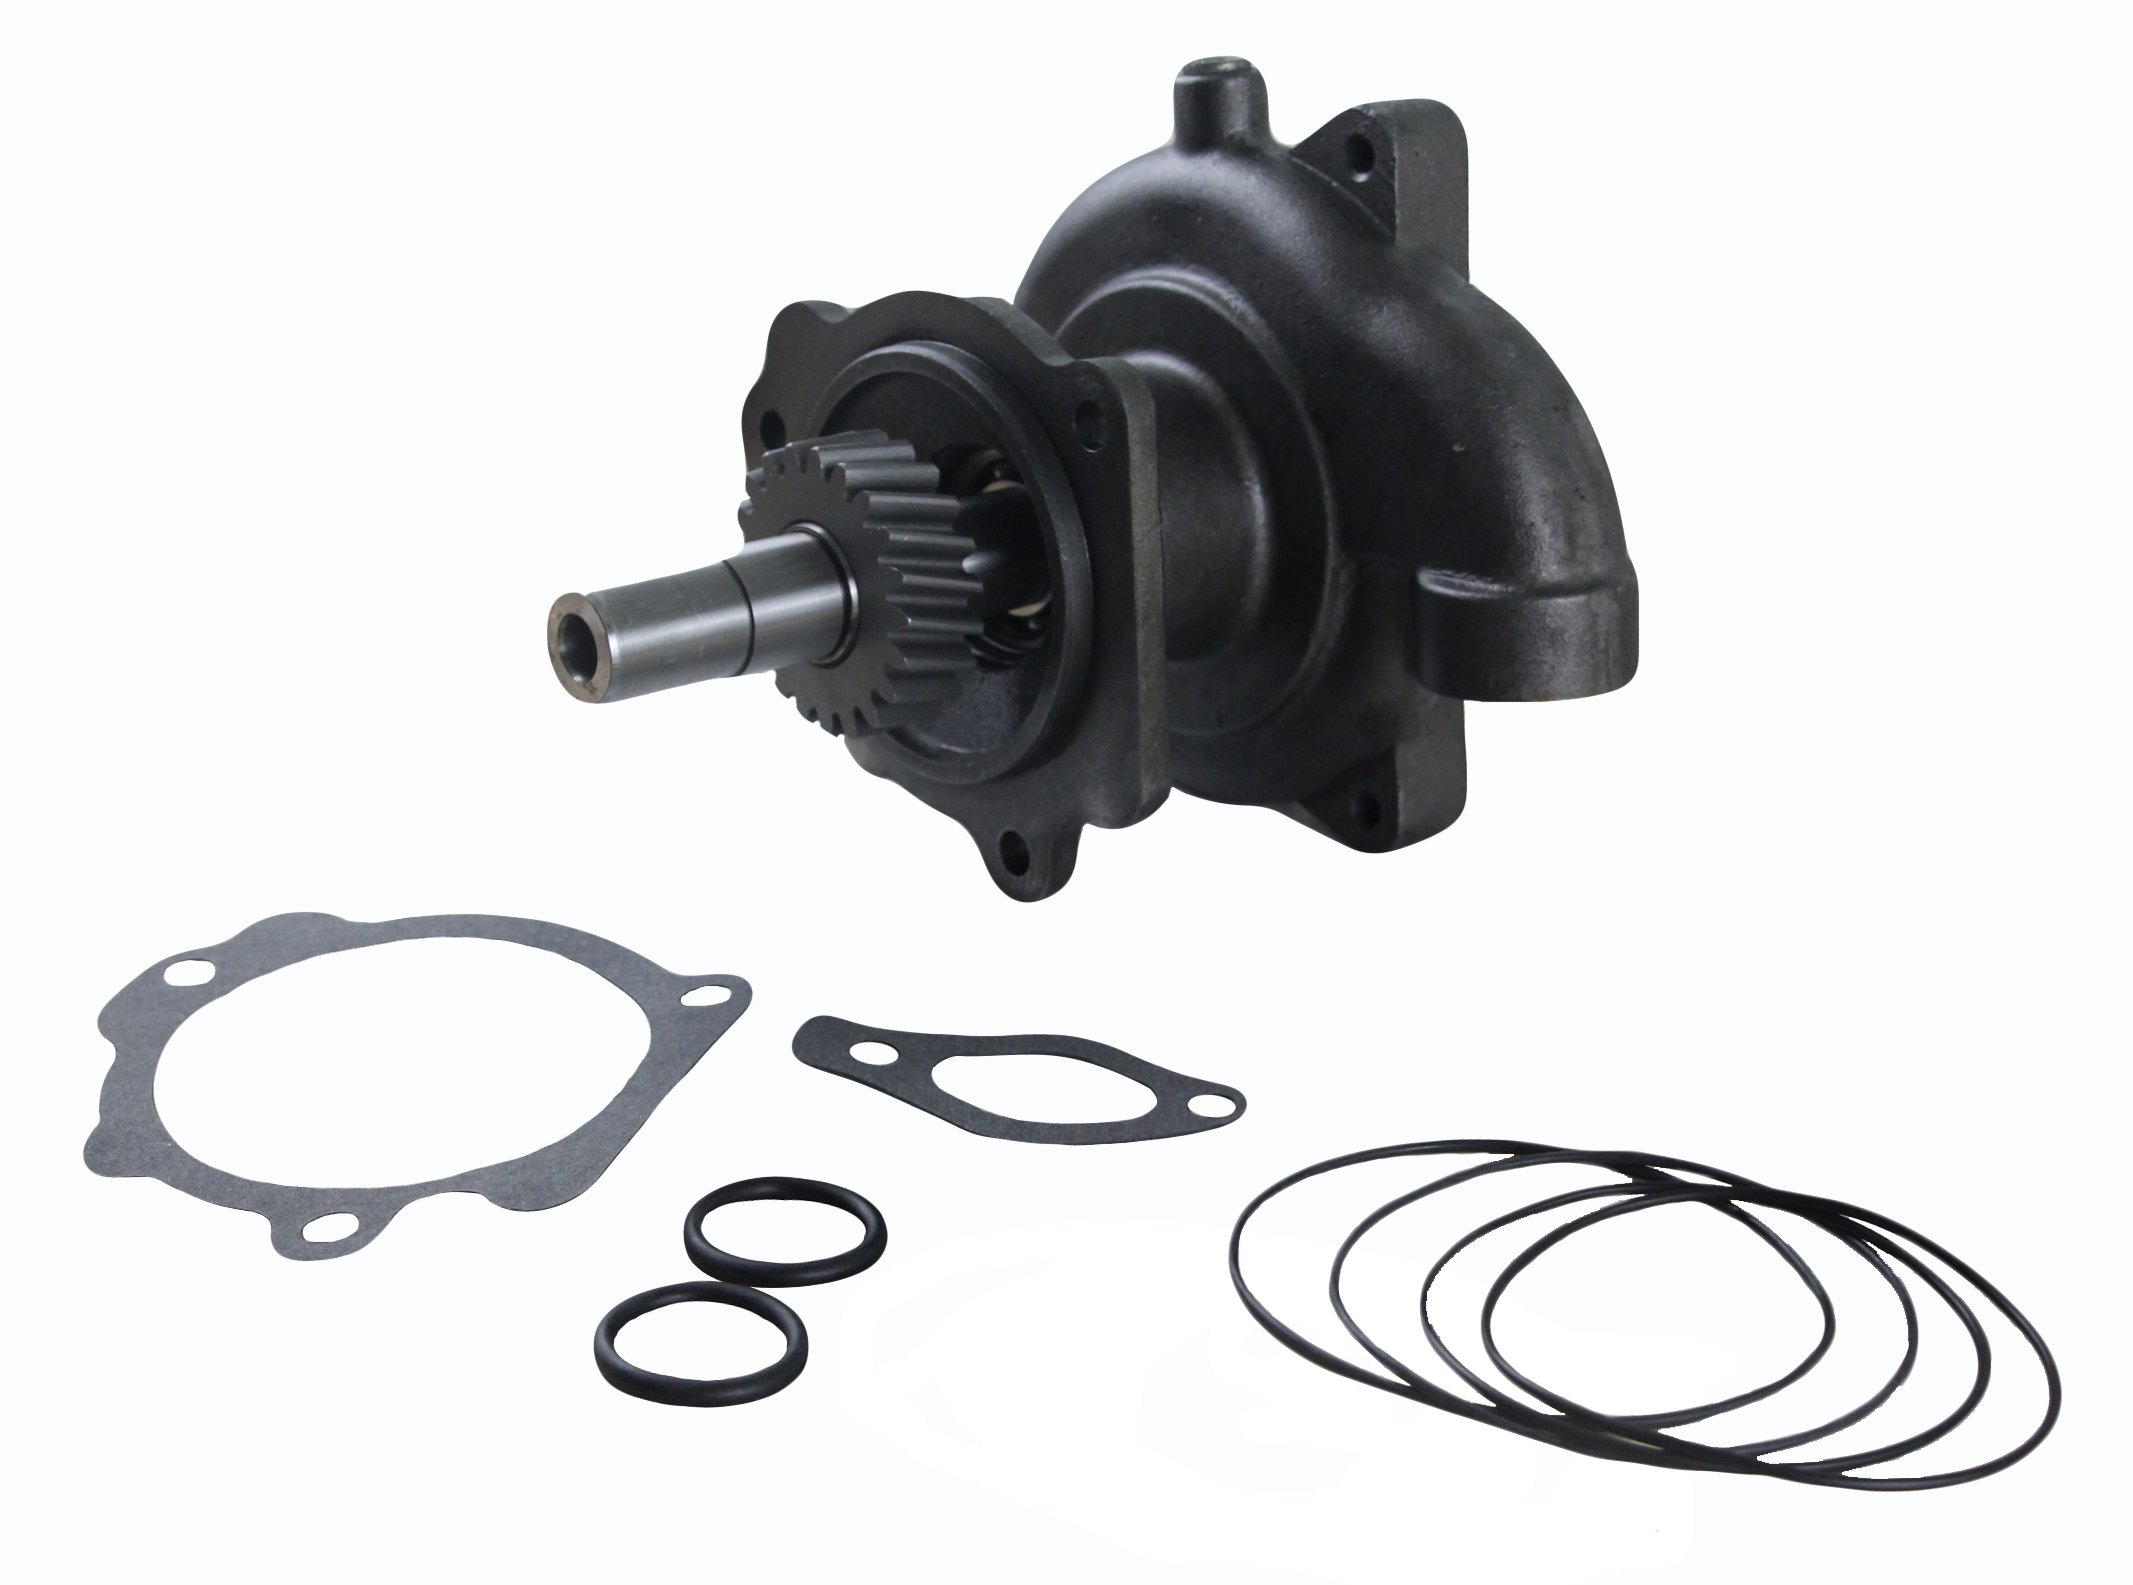 NEW MECHANICAL WATER PUMP FOR 1991-02 CUMMINS DIESEL L10/M11 3803403RX 2882144